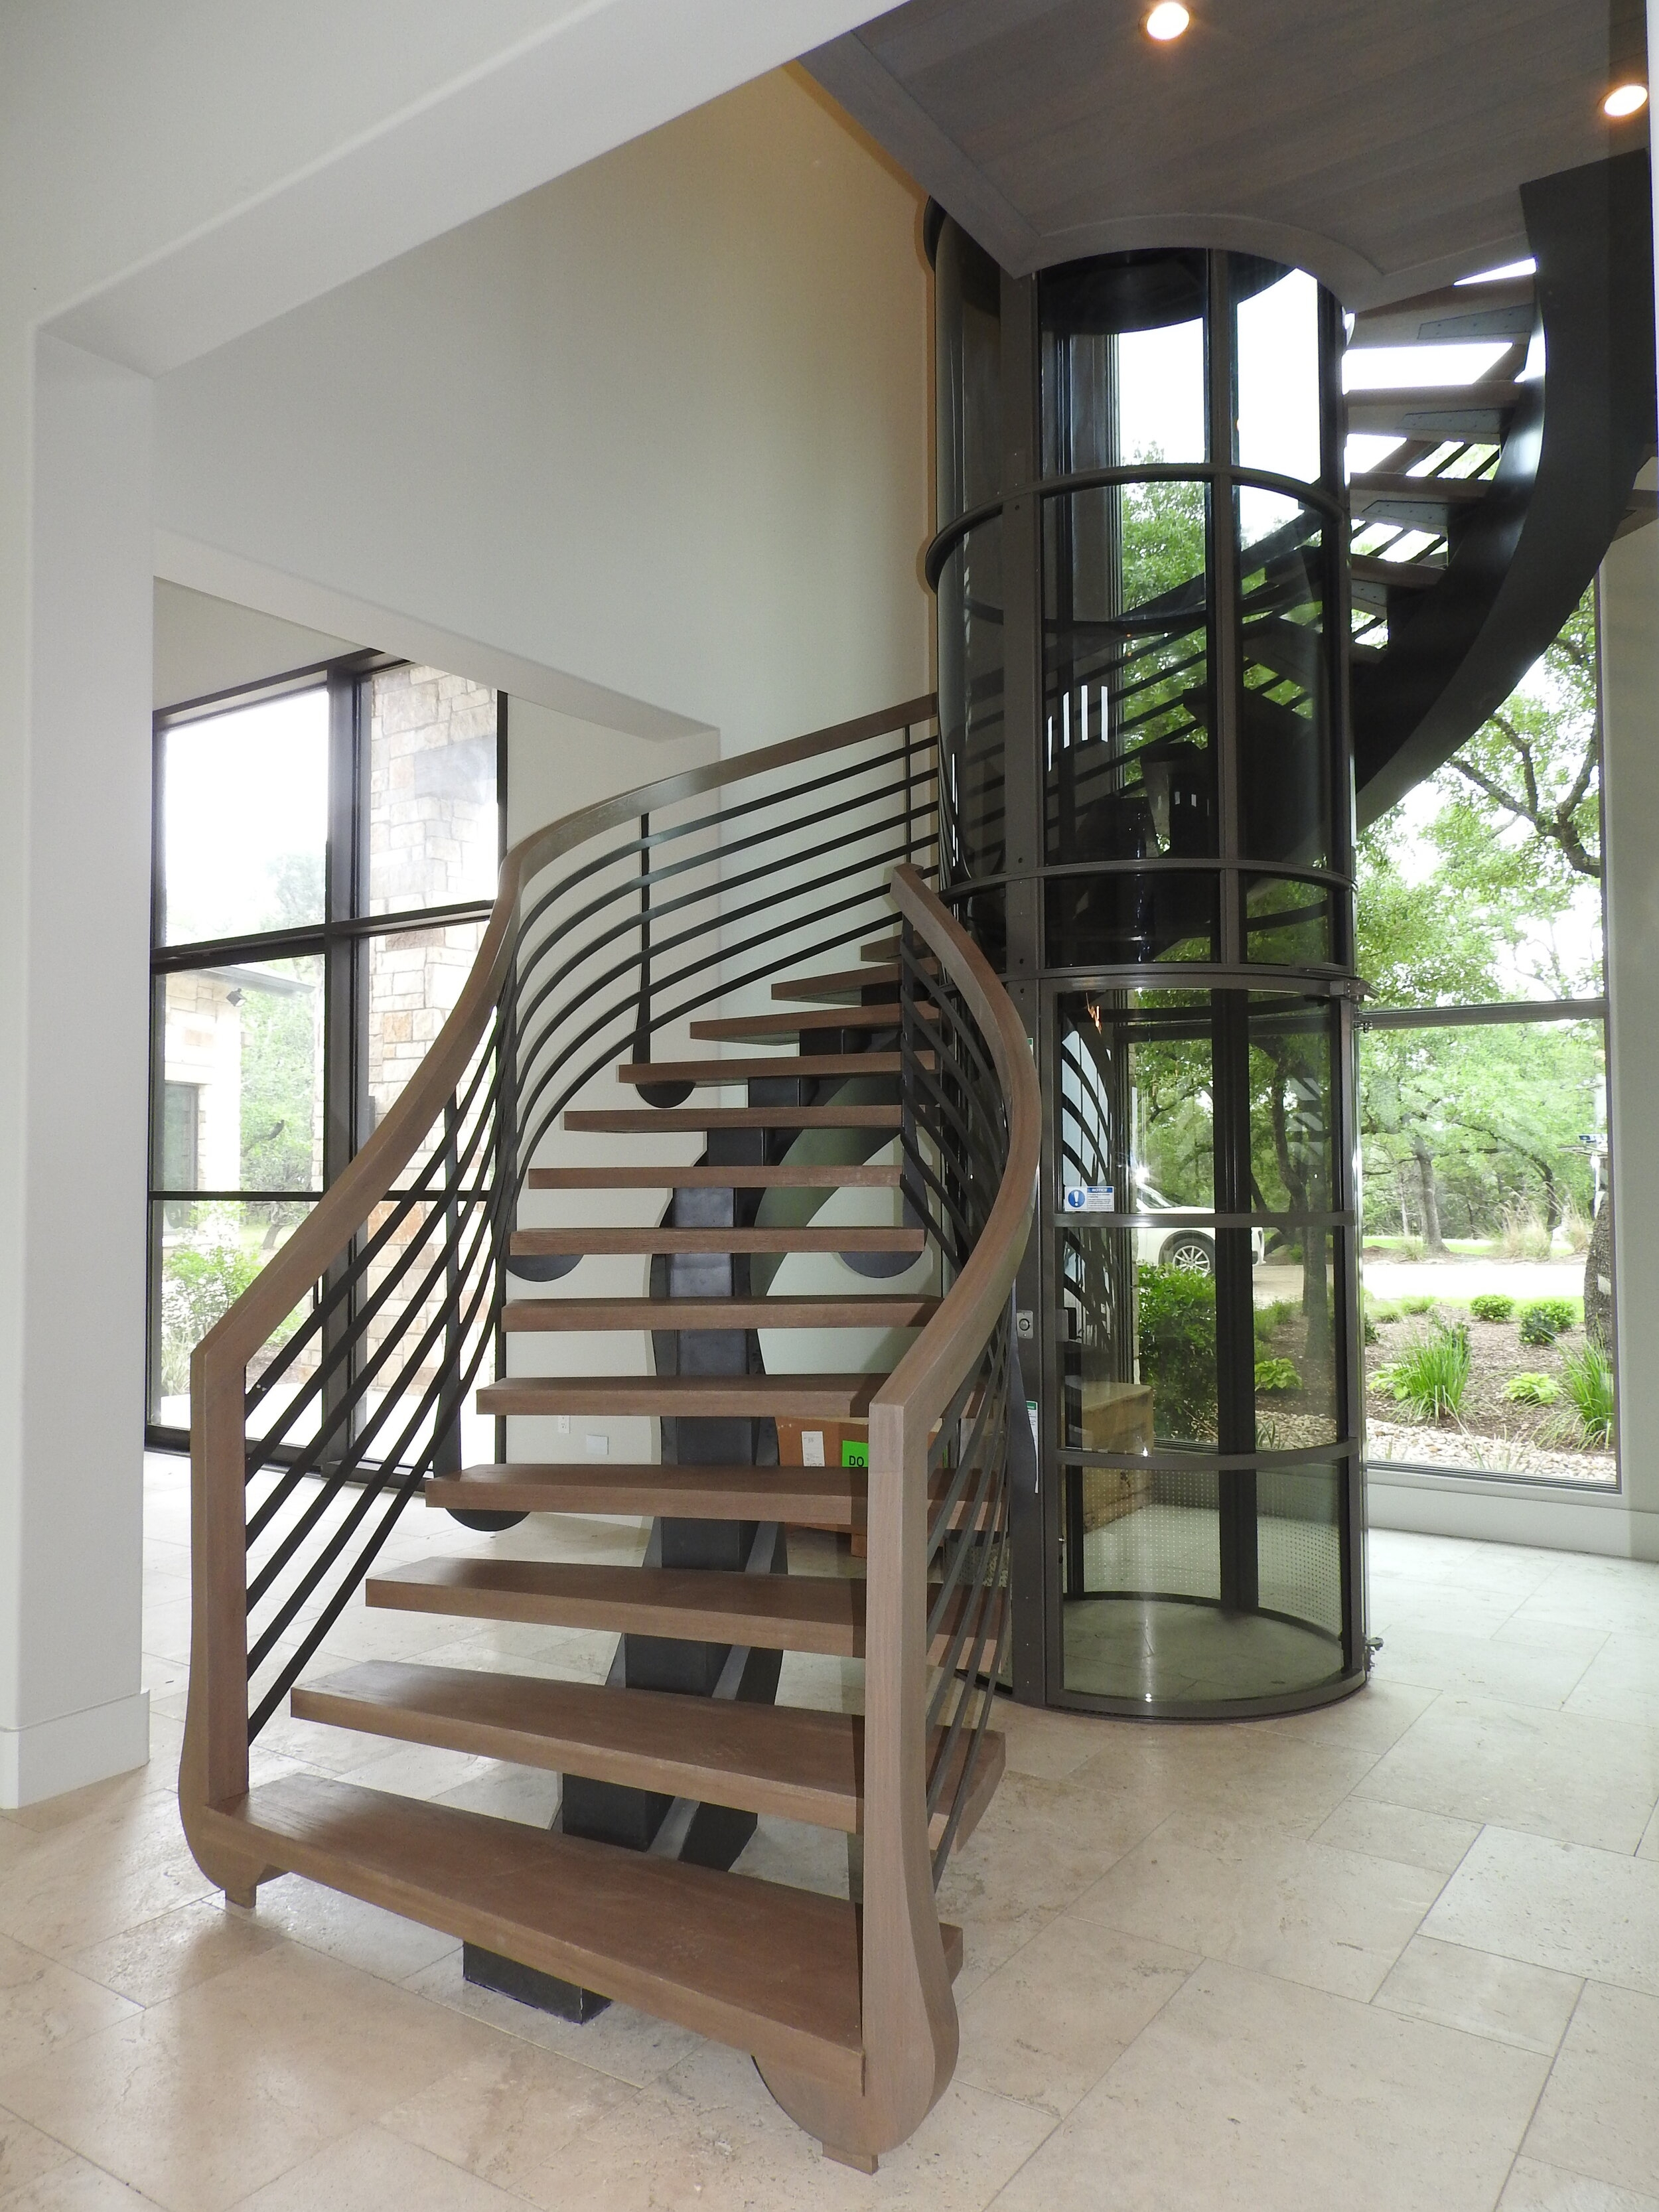 Staircase Railings — San Marcos Iron Doors | Floating Stairs With Glass Railing | Duplex Balcony | Combination Glass | Glass Balustrade | Crystal Handrail | Innovative Glass